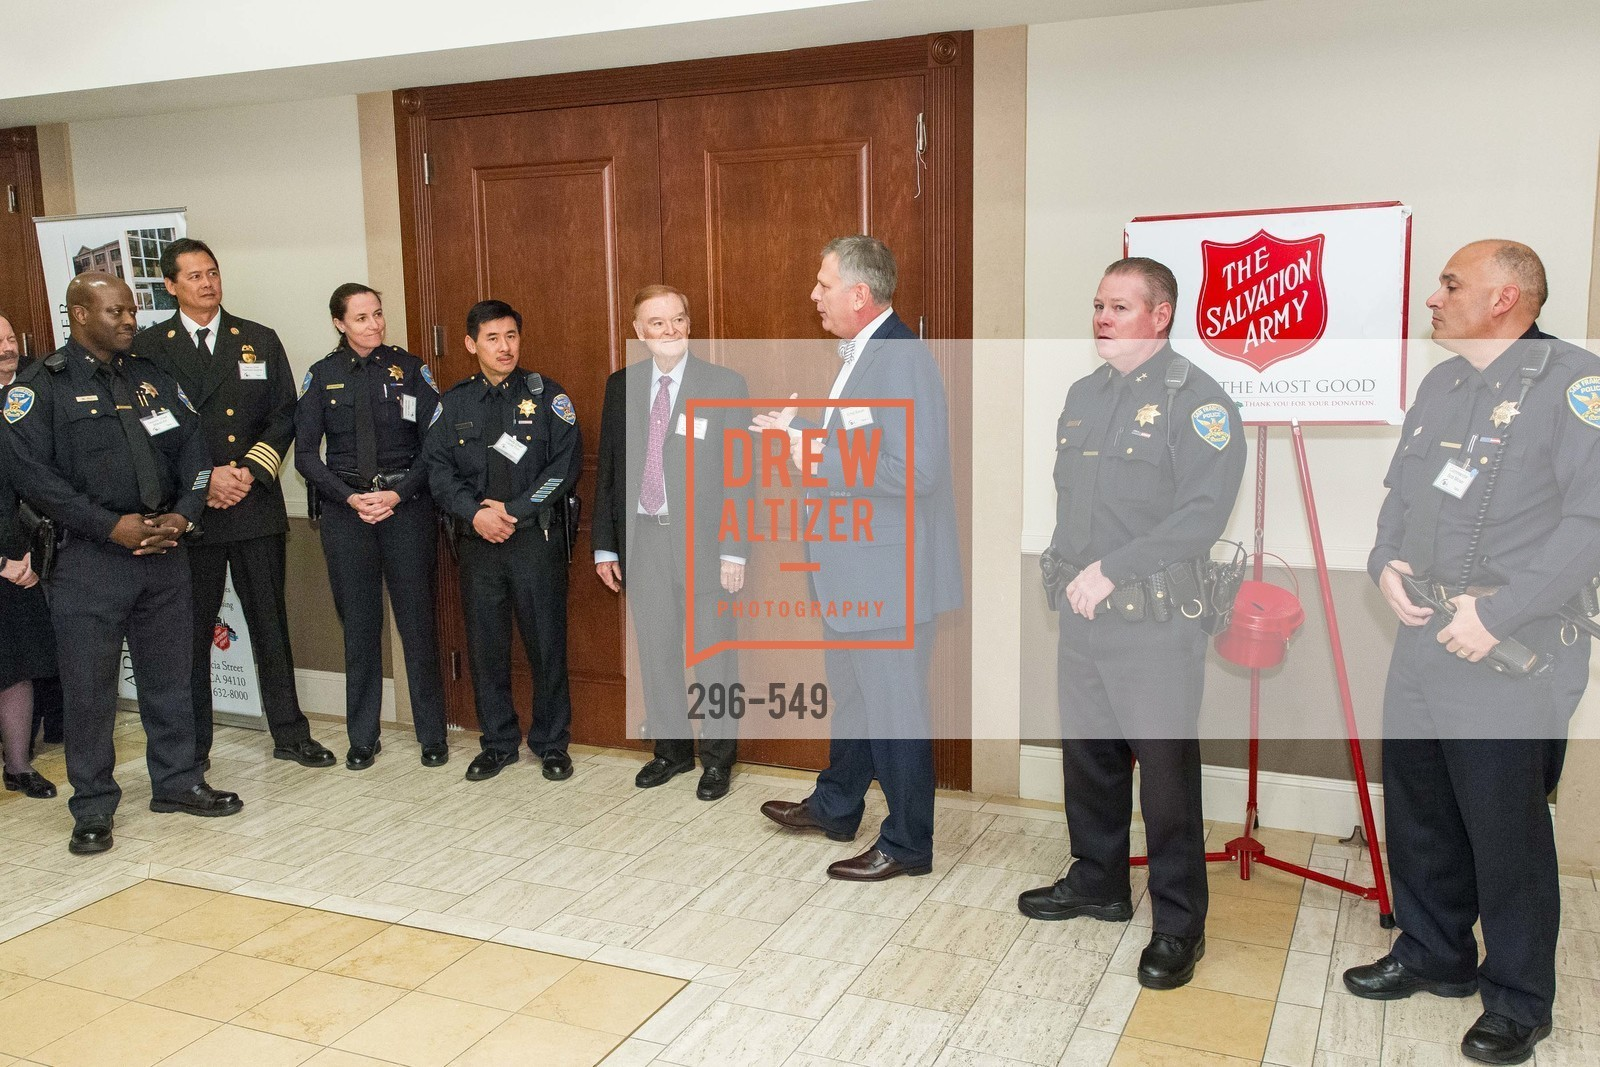 Mikail Ali, Raymond Guzman, Ann Mannix, Garret Tom, Frank Jordan, Ernst Bauer, Mike Redmond, Bob Moser, The Salvation Army's 12th Annual Holiday Luncheon Kettle Kickoff, The Bently Reserve. 301 Battery St, November 18th, 2015,Drew Altizer, Drew Altizer Photography, full-service agency, private events, San Francisco photographer, photographer california